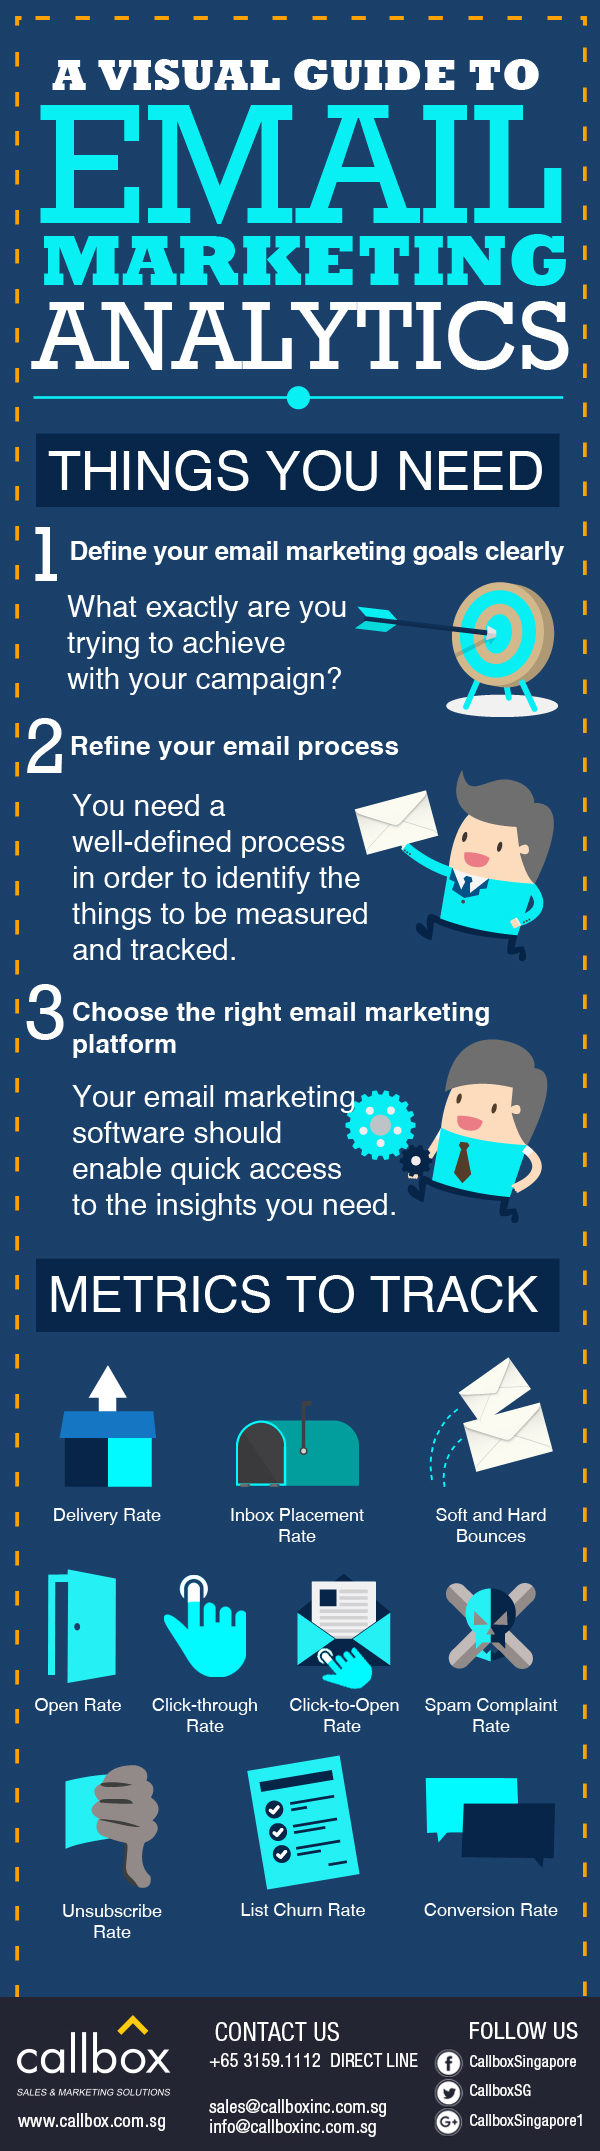 A Visual Guide to Email Marketing Analytics